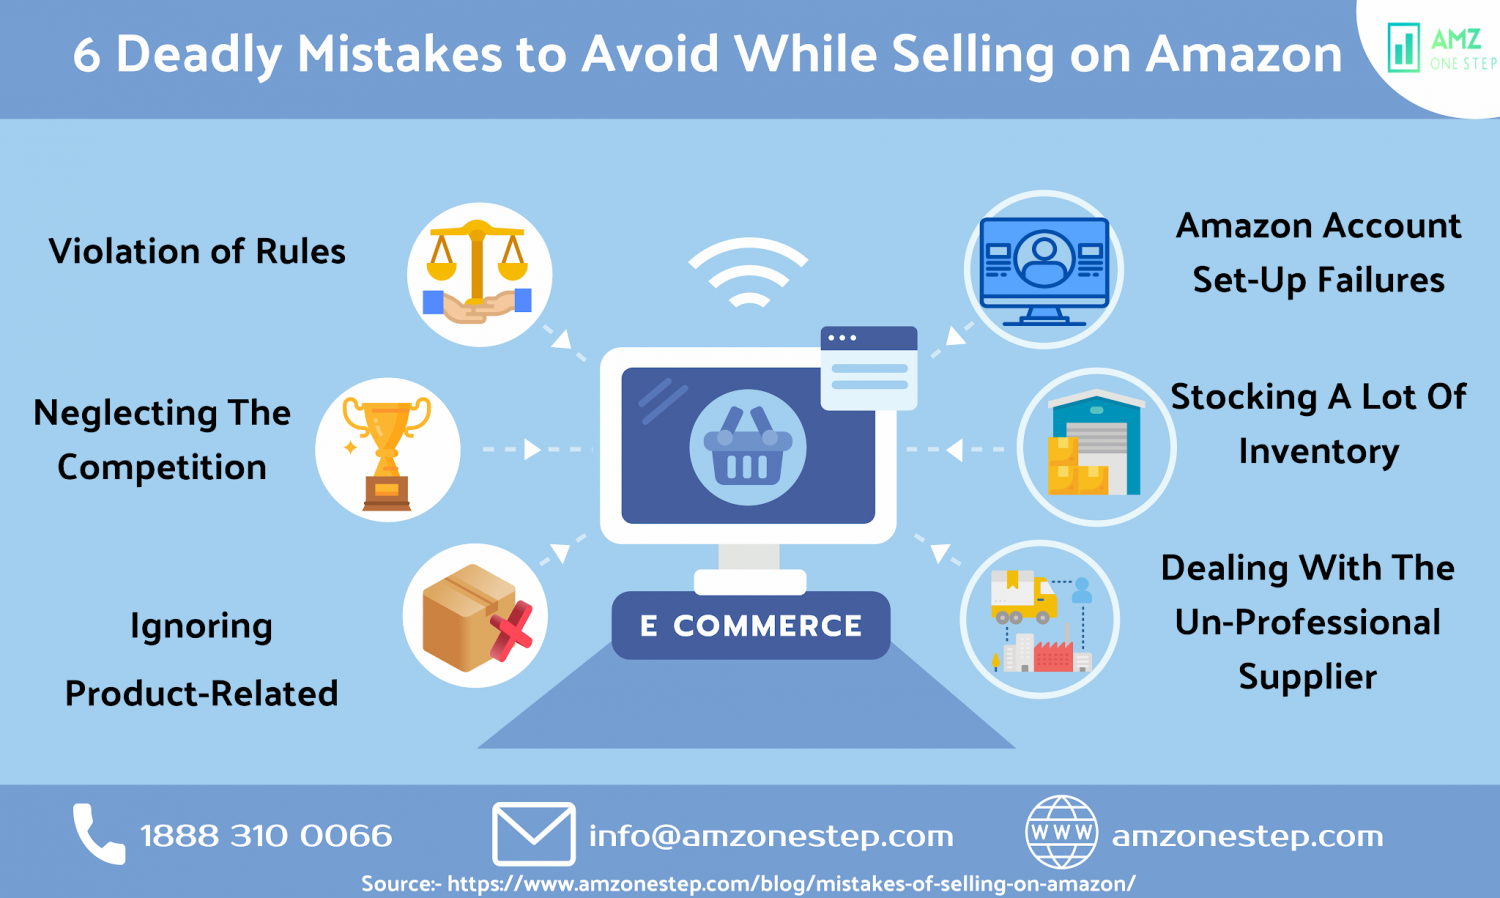 6 Deadly Mistakes to Avoid While Selling on Amazon Infographic